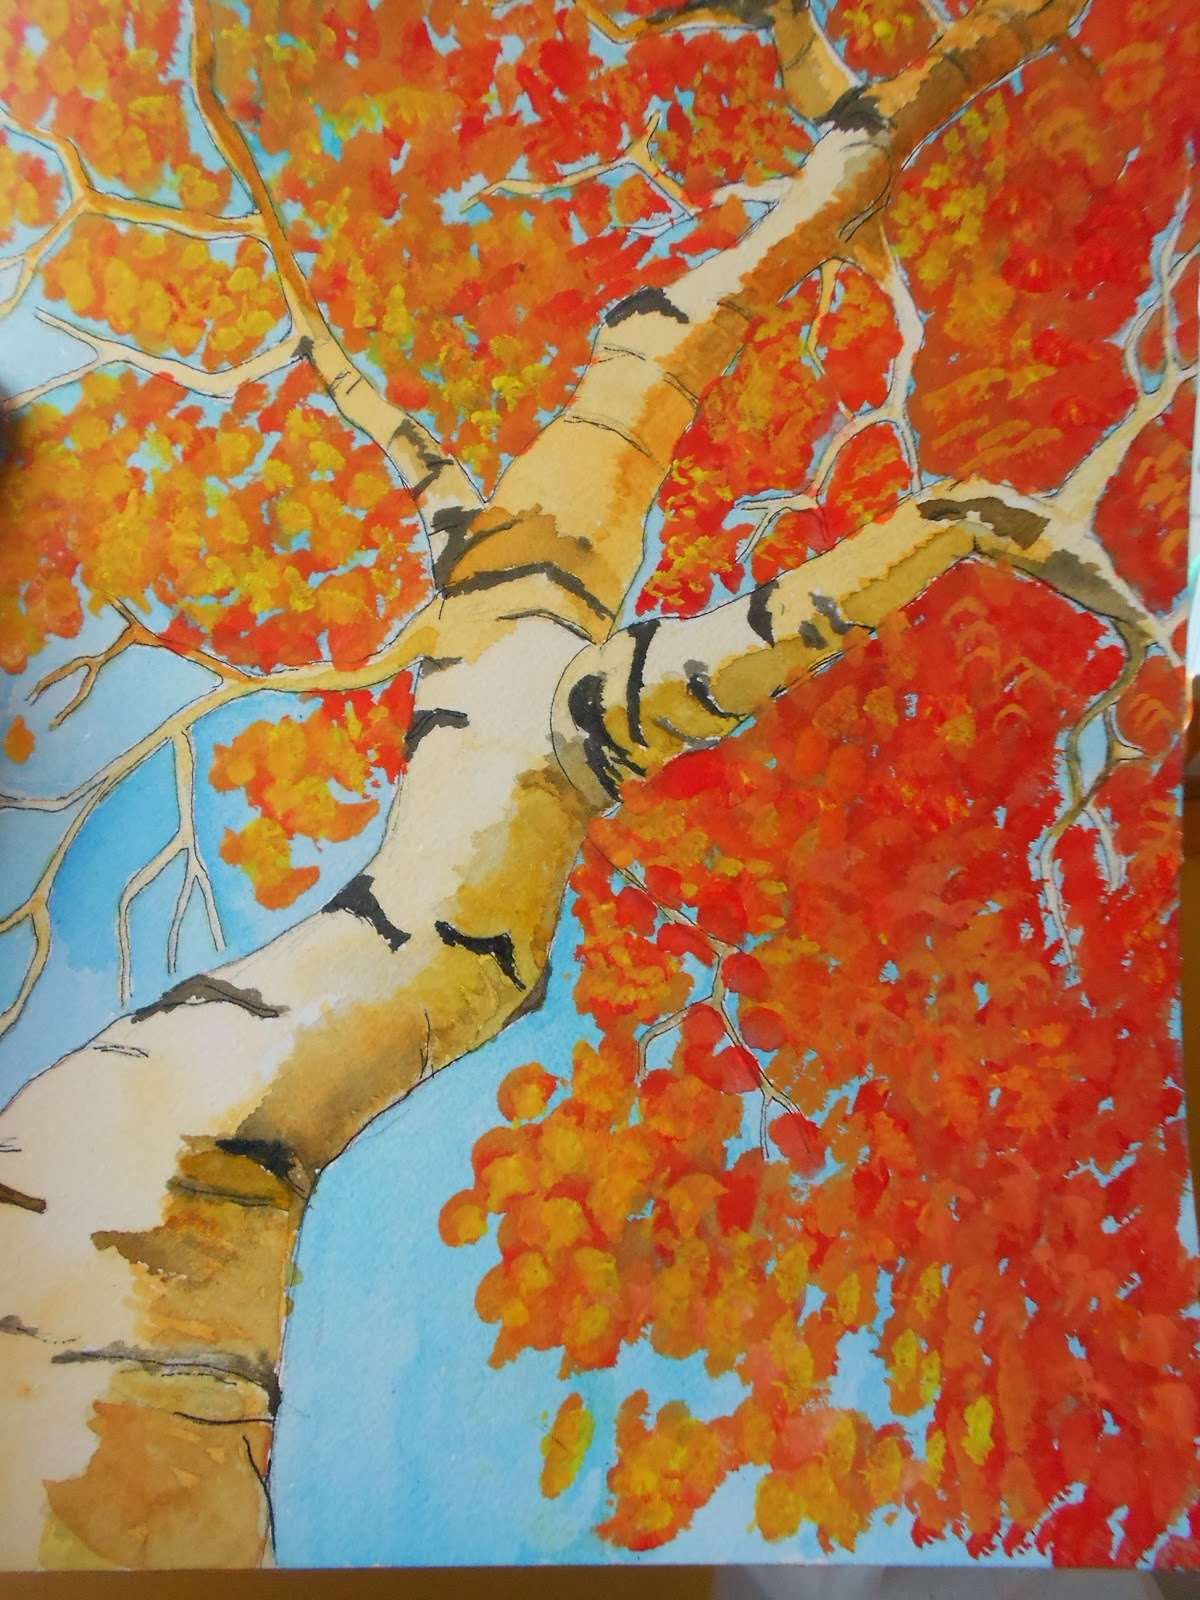 Autumn landscape art project ideas artmuse67 for Fall paintings easy